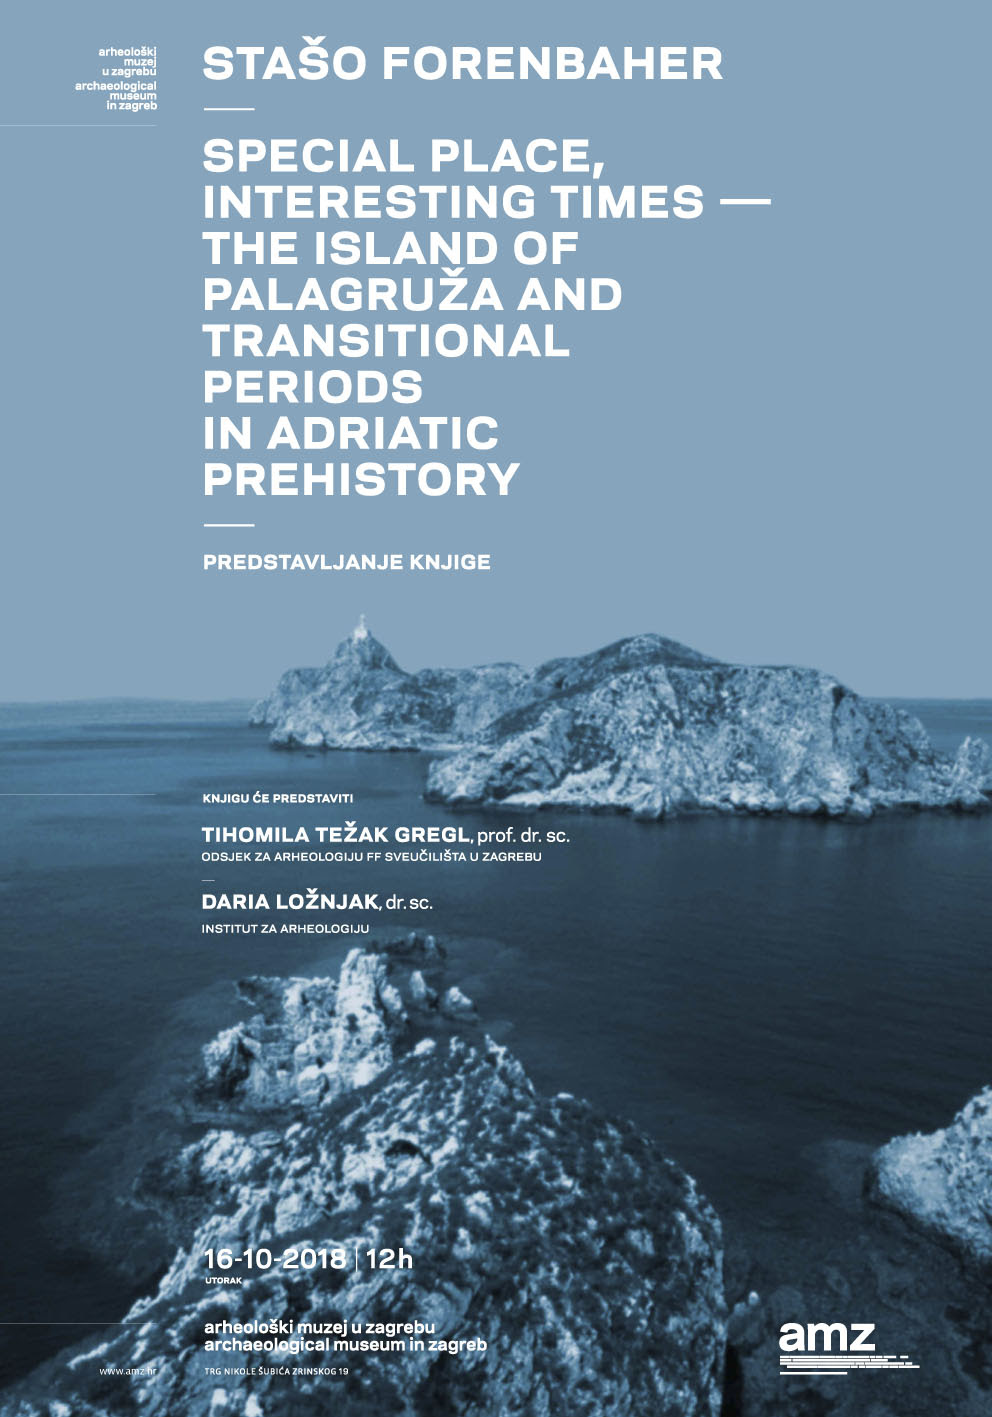 AMZ – Predstavljanje knjige  'Special Place, Interesting Times: The island of Palagruža and transitional periods in Adriatic prehistory' (PRESS)